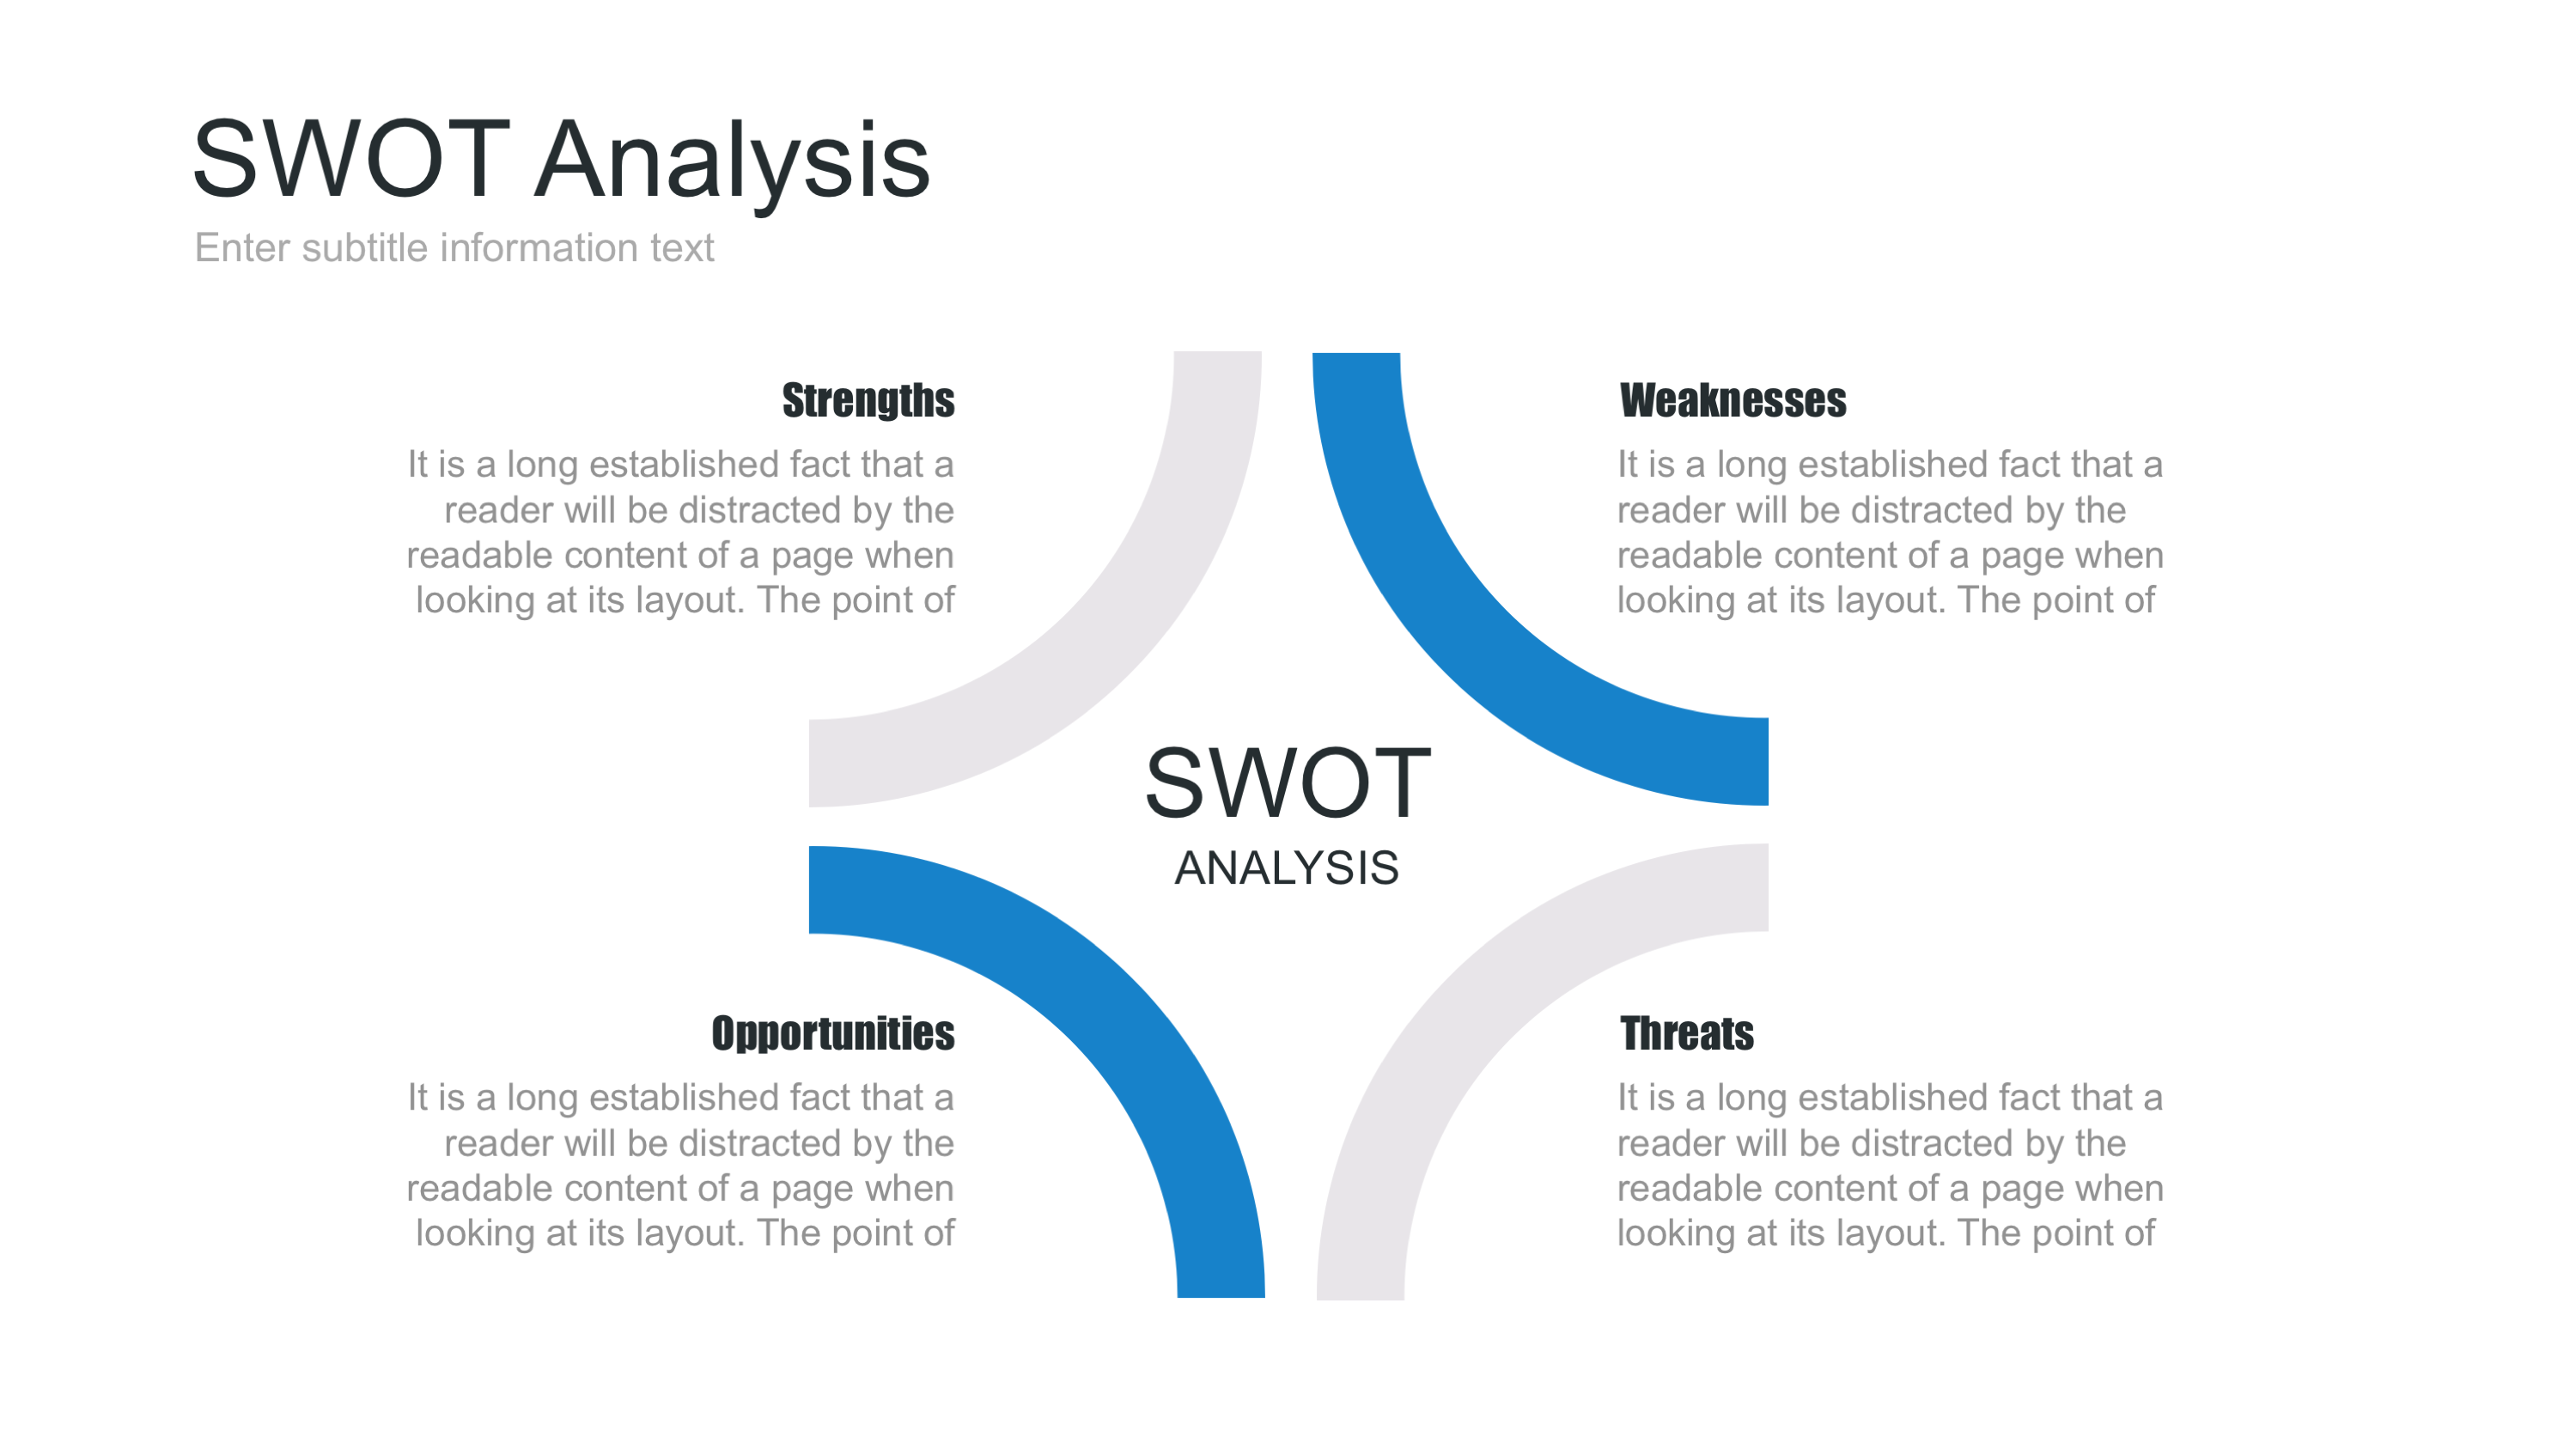 puma swot analysis Synopsis puma se (pum) - financial and strategic swot analysis review provides you an in-depth strategic swot analysis of the company's businesses and operations the profile has been compiled by globaldata to bring to you a clear and an unbiased view of the company's key strengths and weaknesses and the potential opportunities and threats.